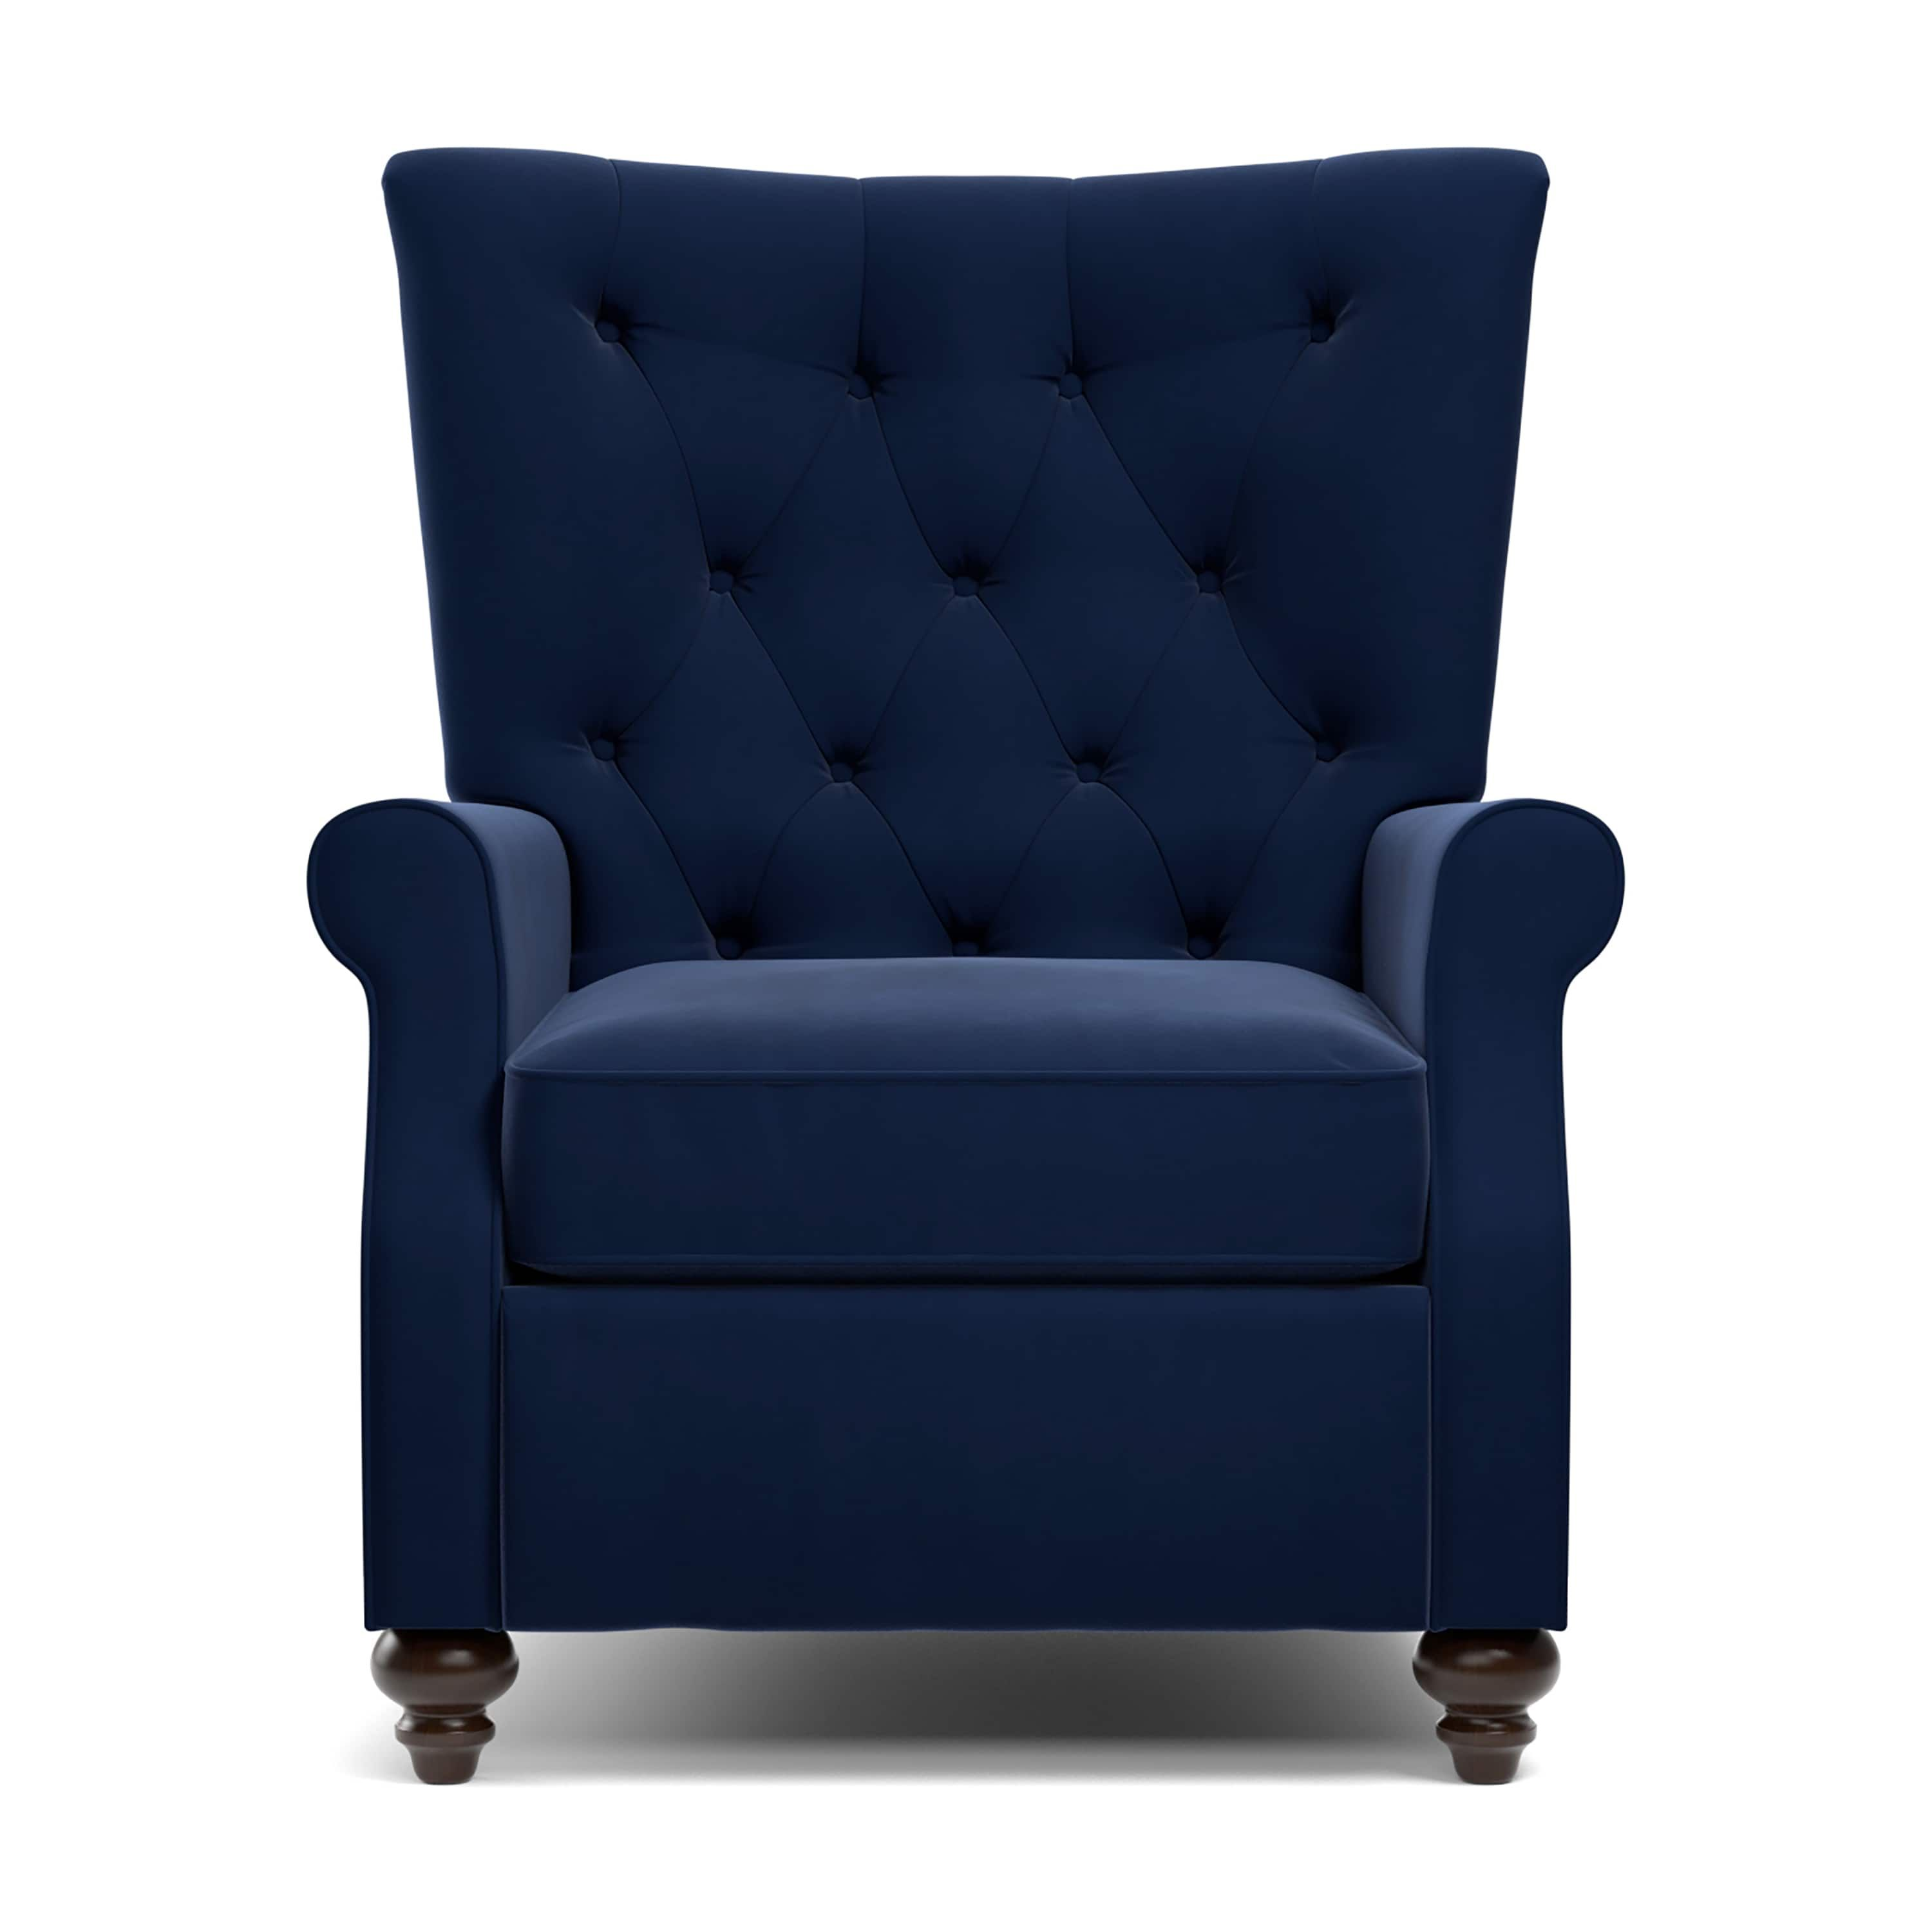 Moran Recliners Chairs Copper Grove Kamoya Navy Blue Velvet Push Back Recliner Chair